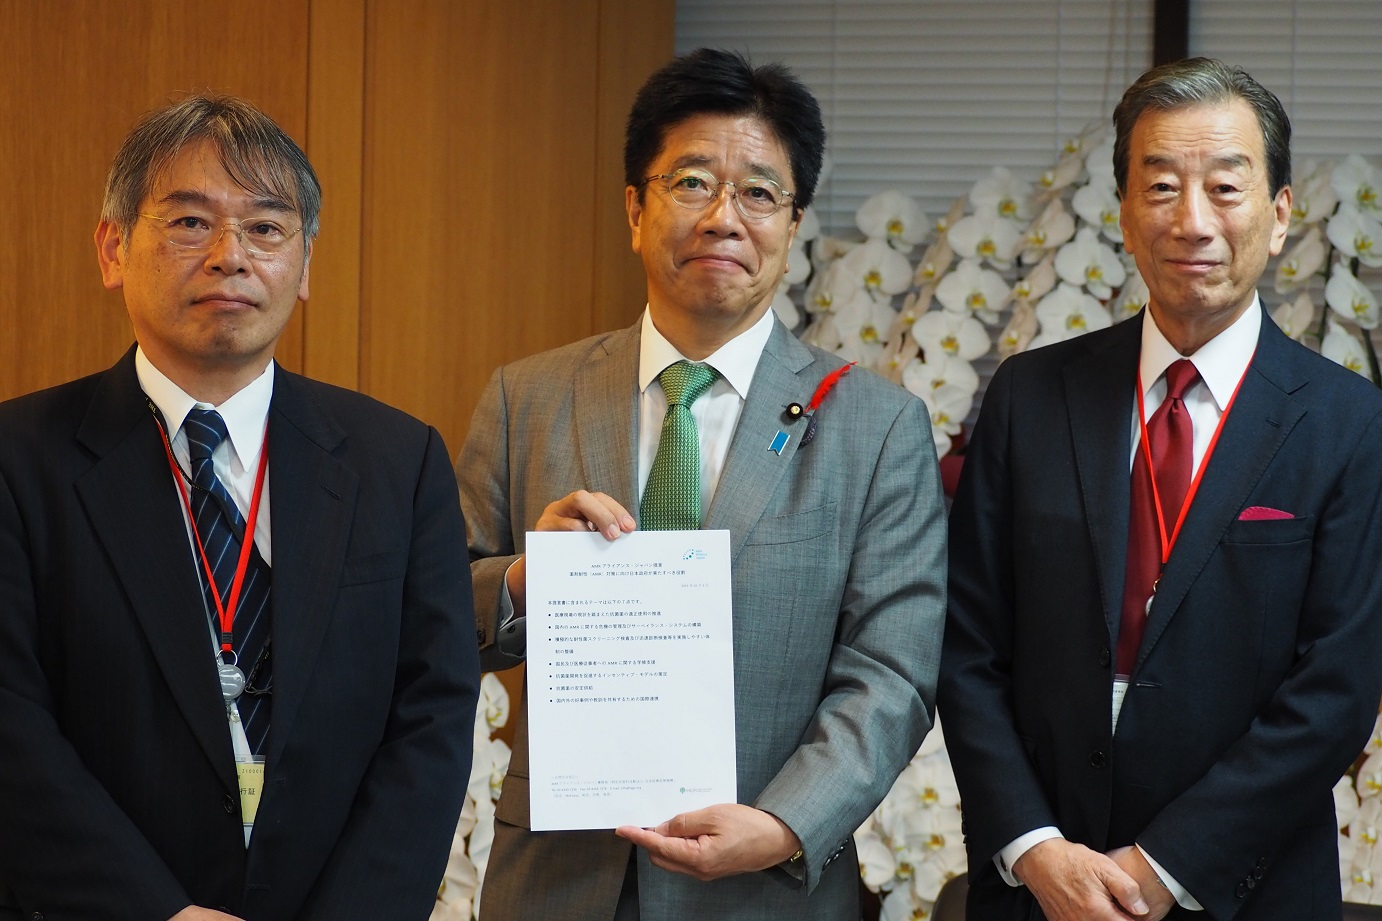 [Recommendations] AMR Alliance Japan Delivered Policy Recommendations on AMR to Minister of Health, Labour and Welfare Katsunobu Kato (October 3, 2019)